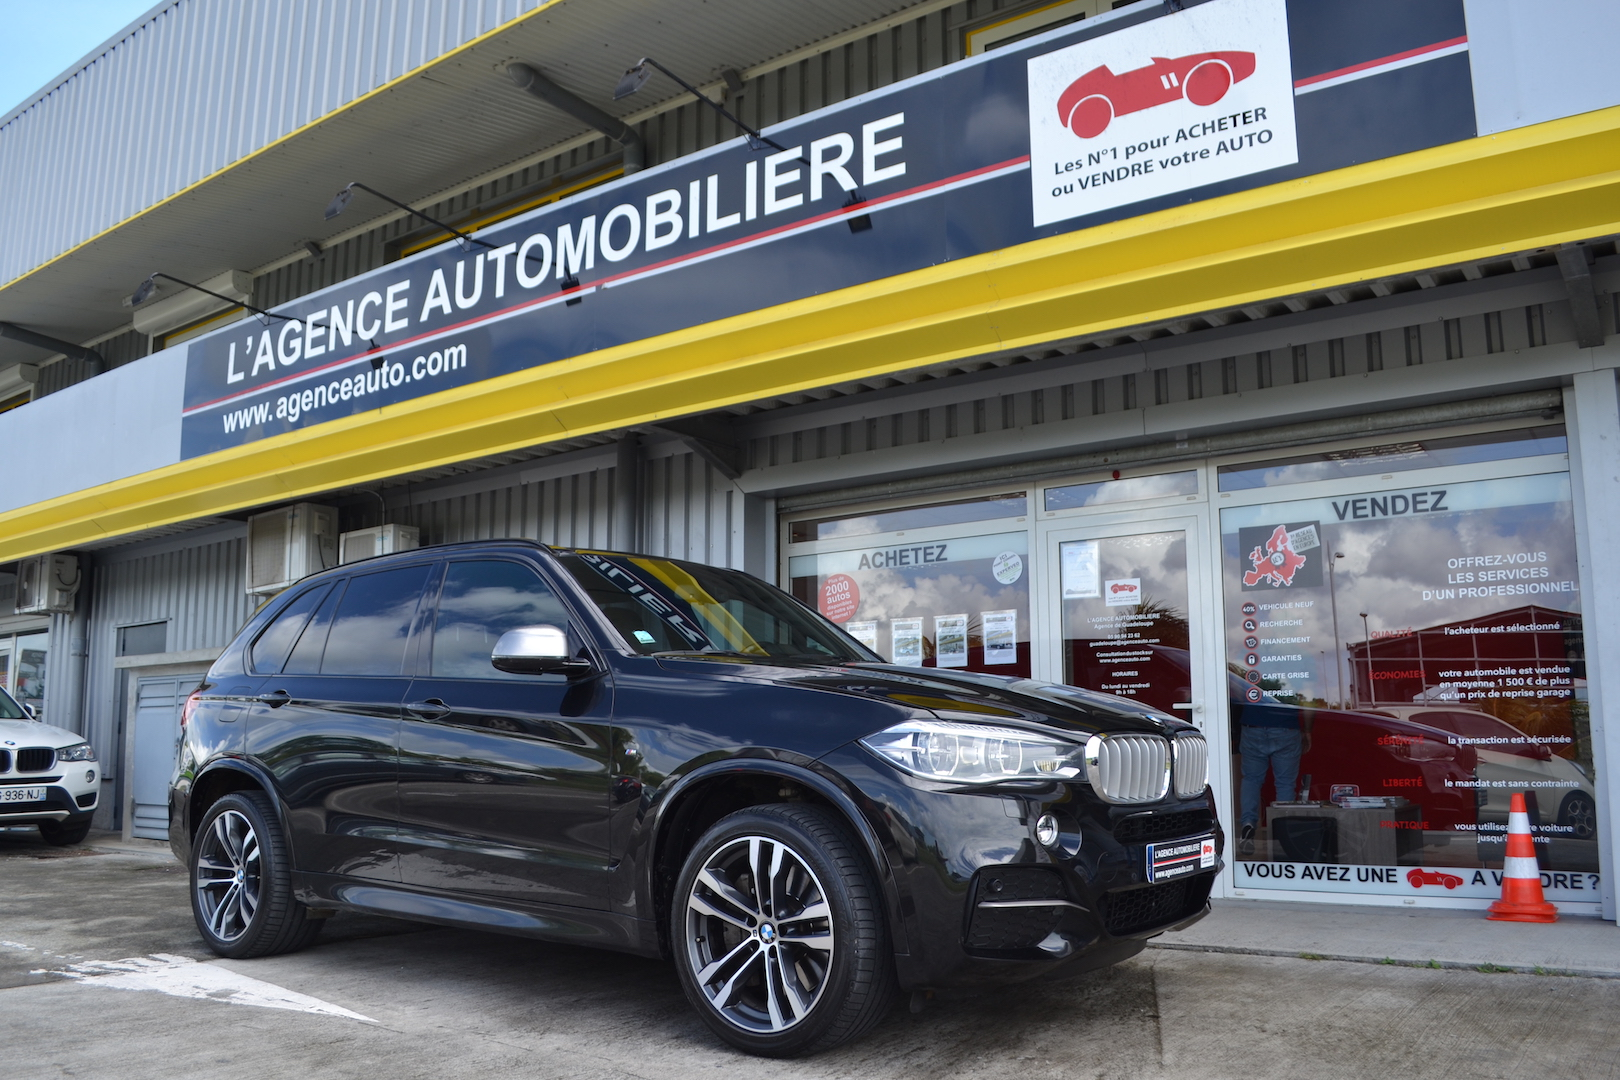 bmw x5 m50d 381 ch a occasion guadeloupe pas cher voiture occasion guadeloupe 97122 agence auto. Black Bedroom Furniture Sets. Home Design Ideas